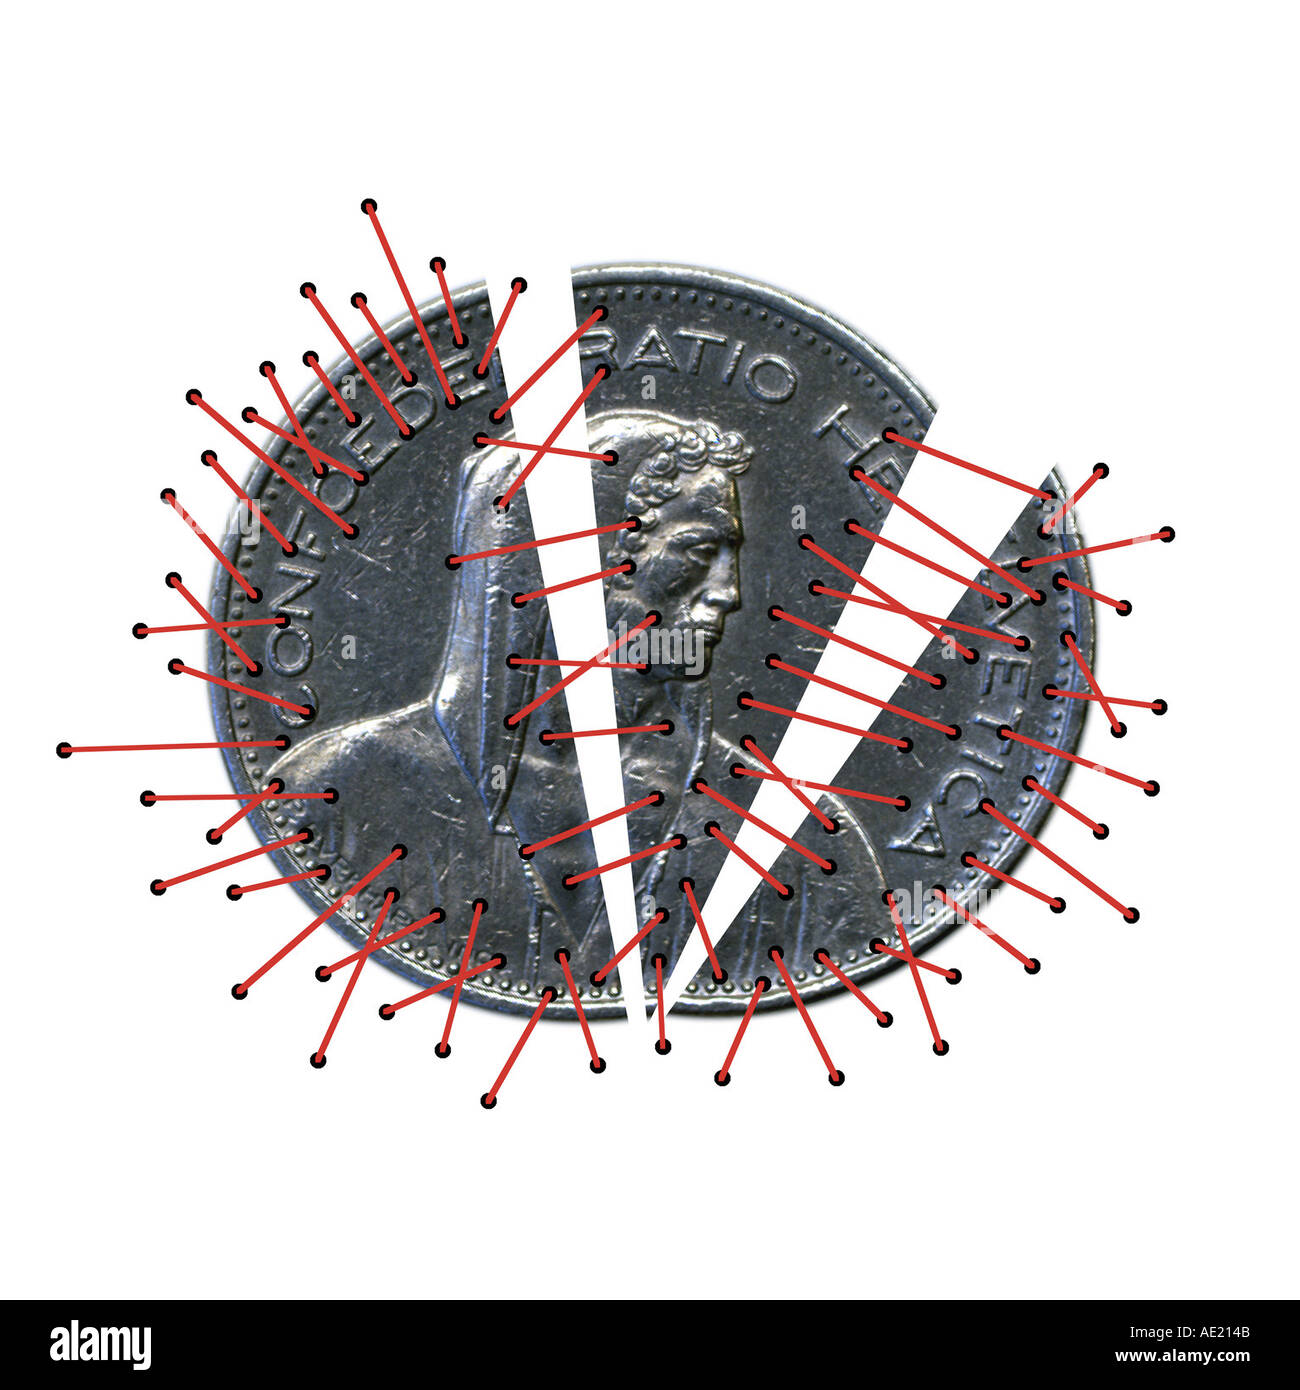 Digital enhancement symbolism for swiss bank secrecy switzerland digital enhancement symbolism for swiss bank secrecy switzerland buycottarizona Image collections